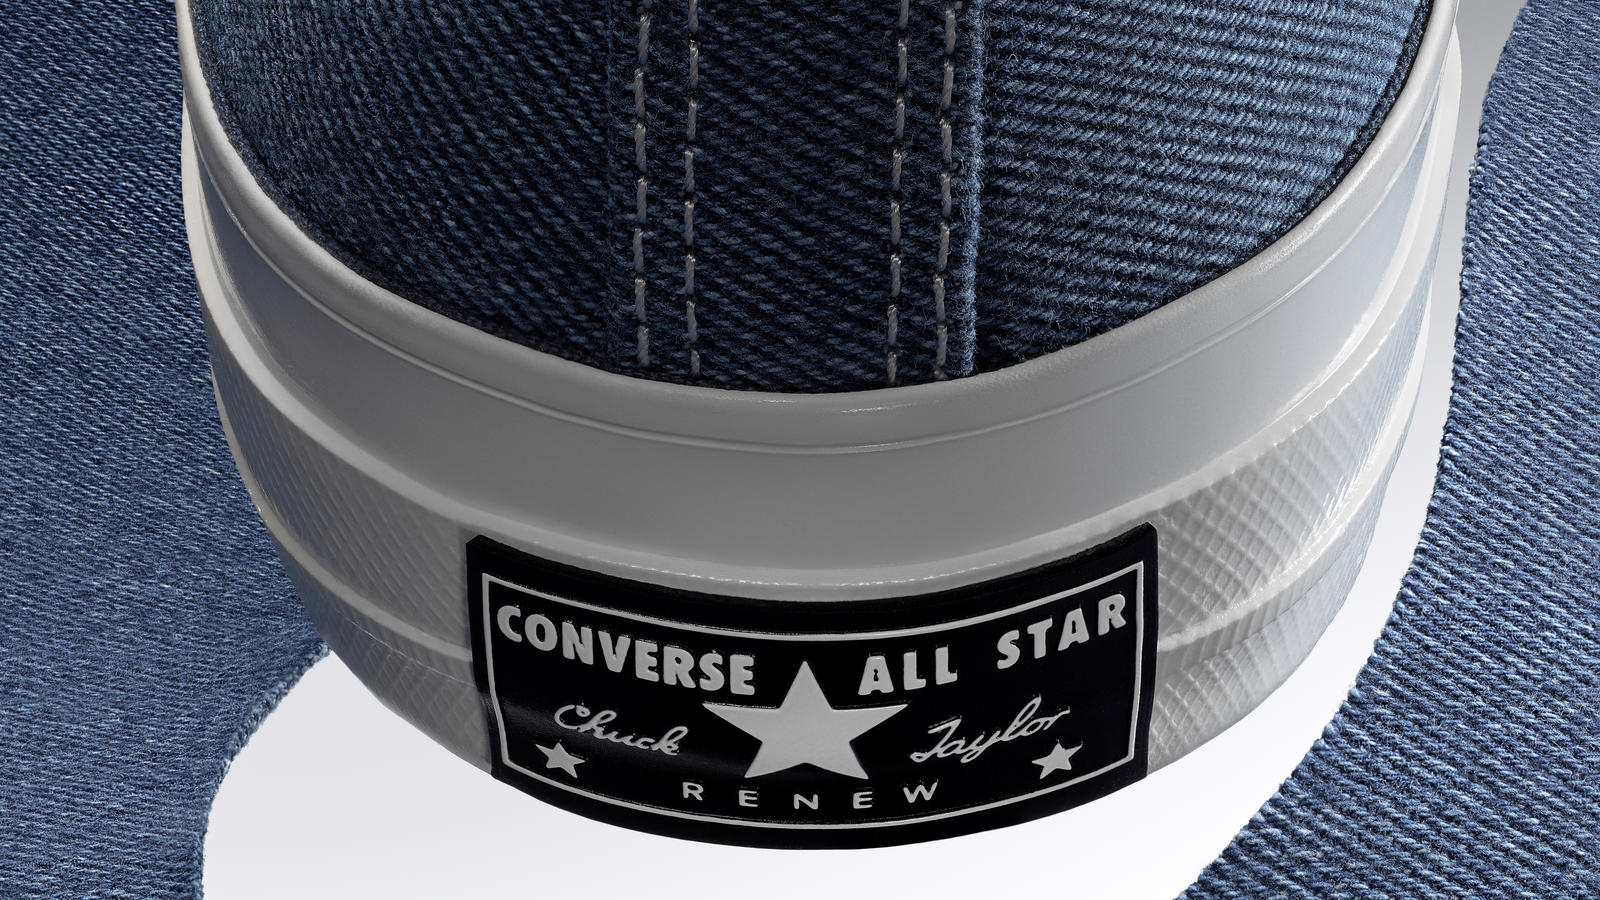 Converse Renew Denim Chuck 70 Collection 2